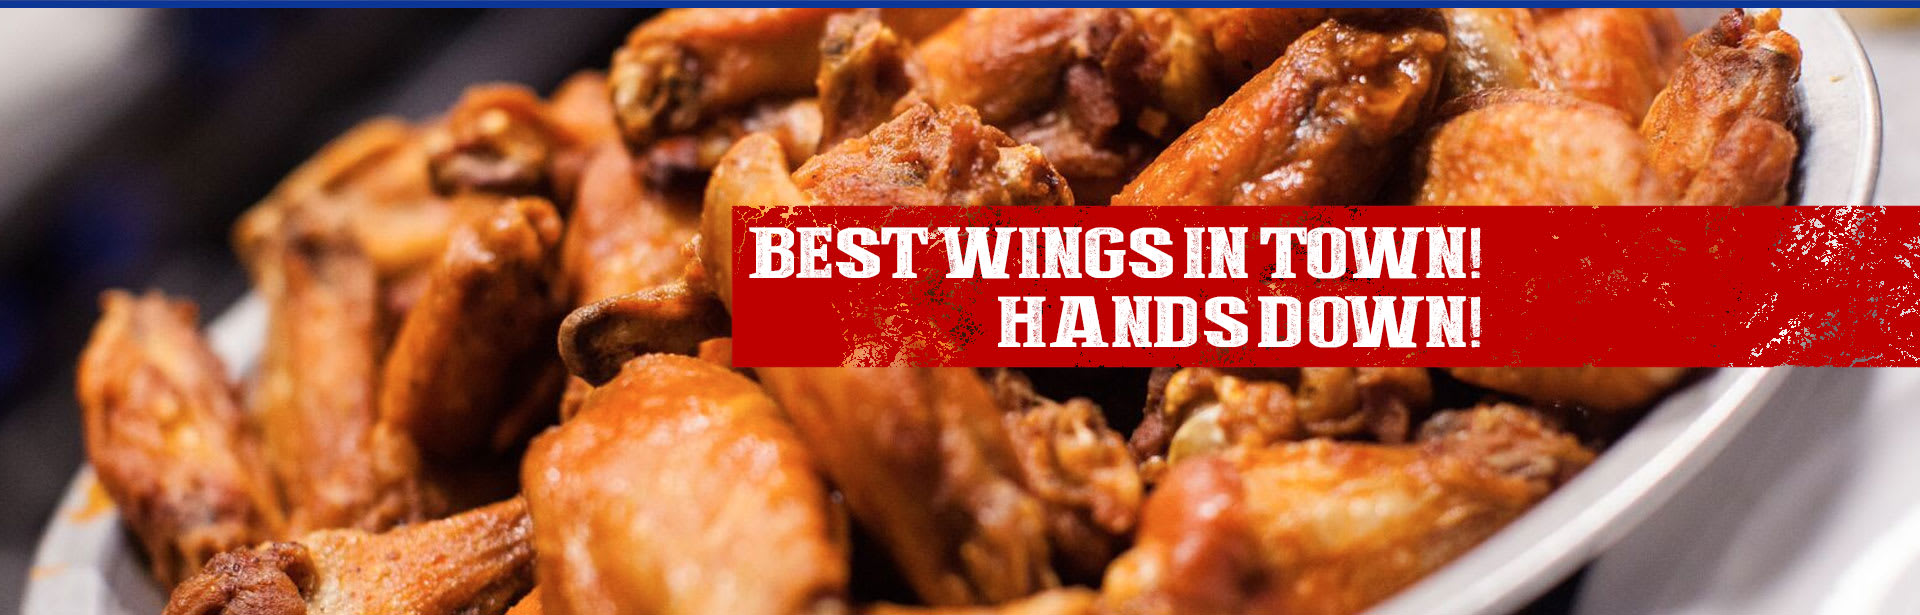 best wings in town hands down